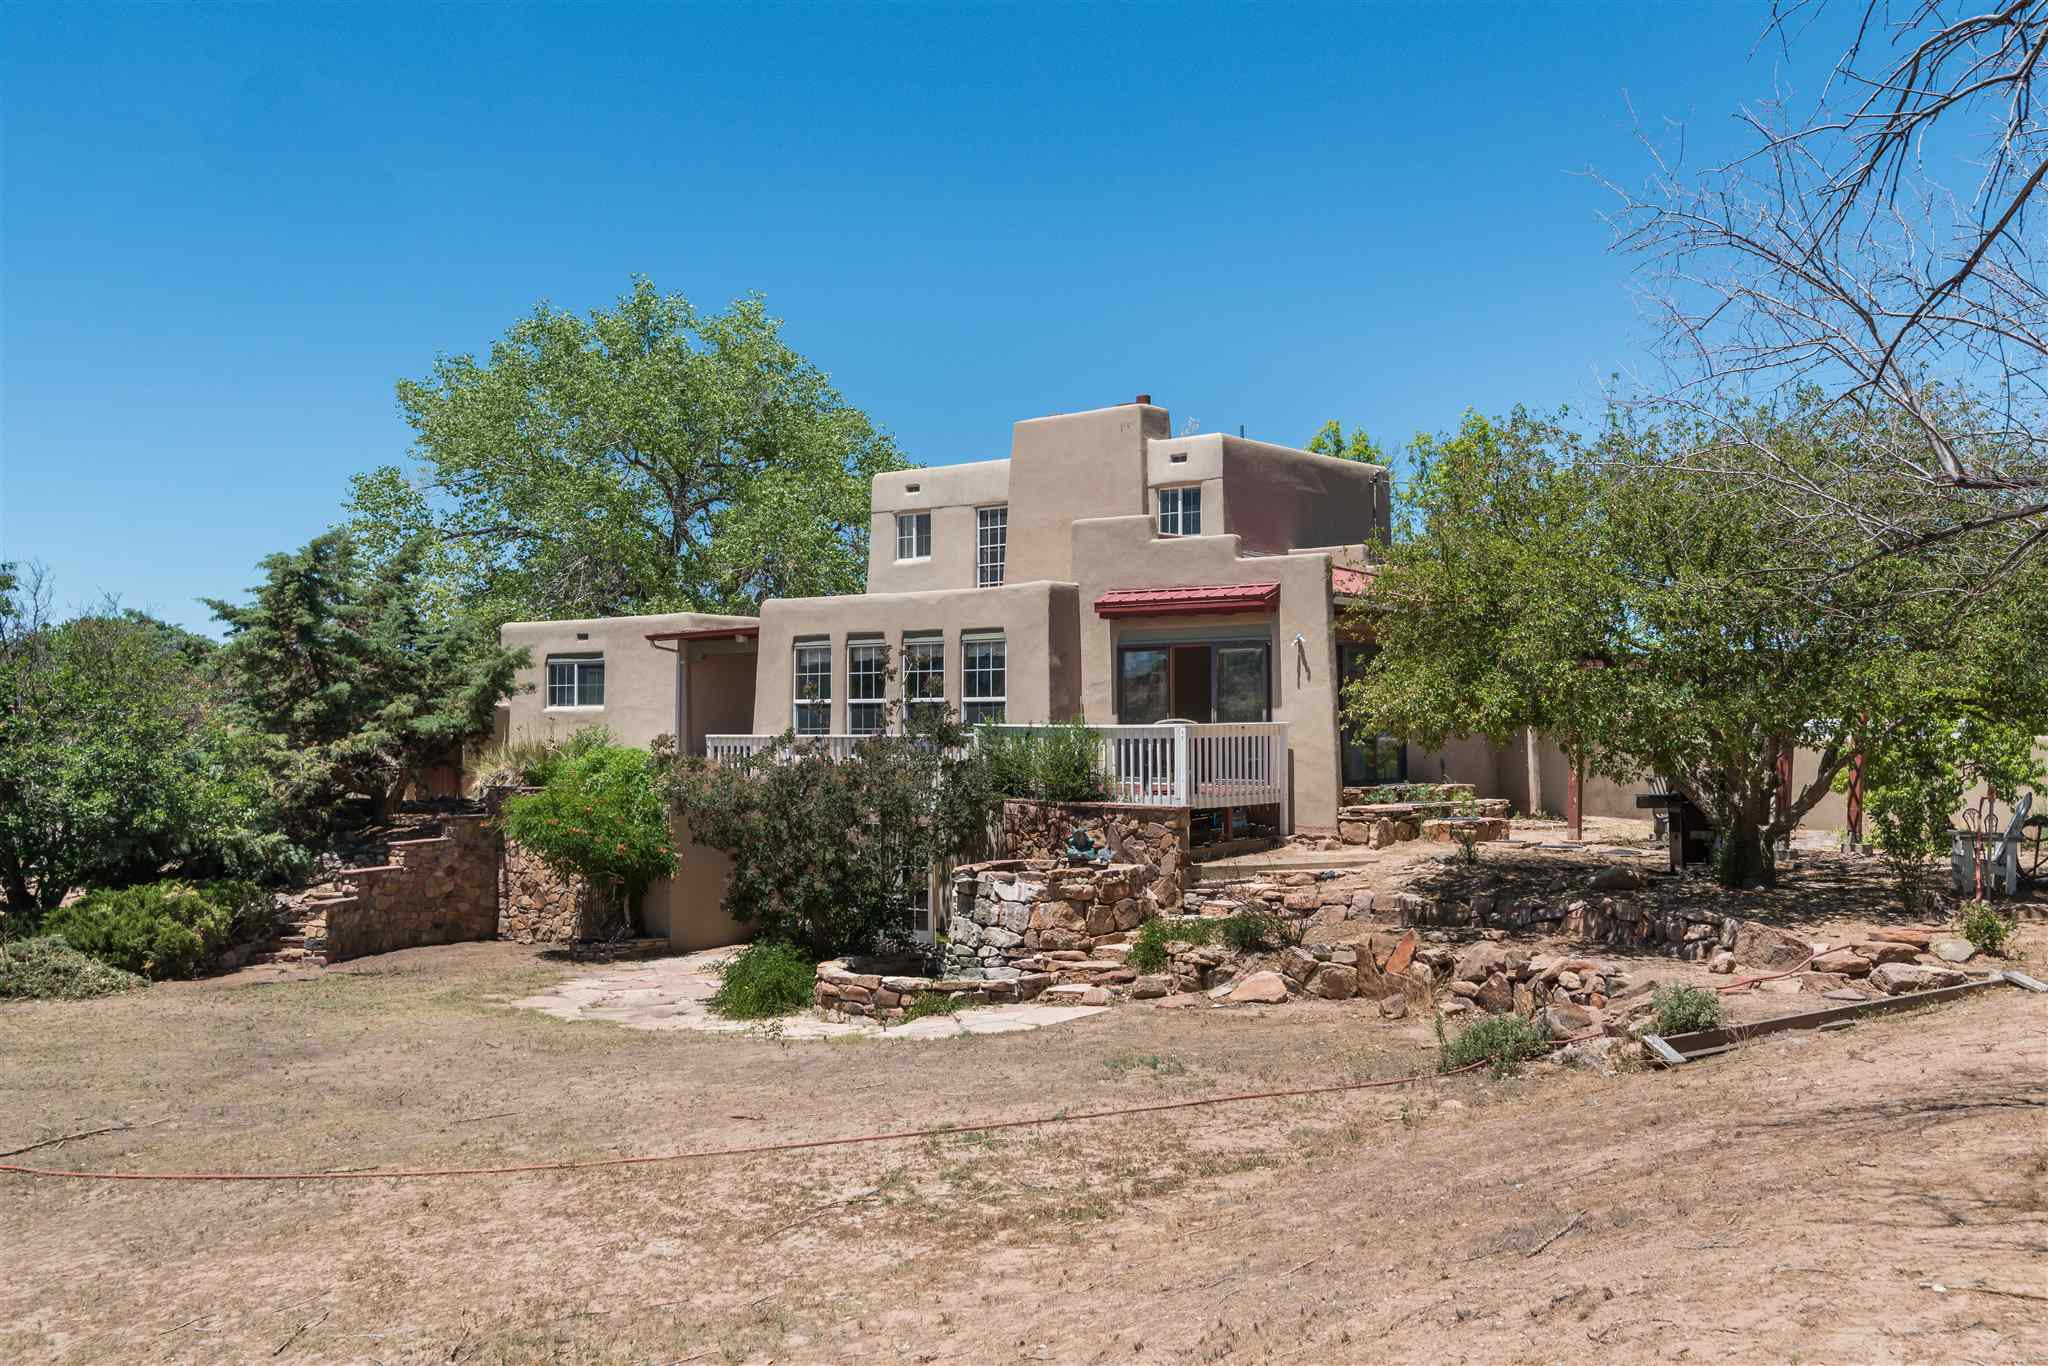 11 PASEO PATRON, Santa Fe, New Mexico 87506, 4 Bedrooms Bedrooms, ,2 BathroomsBathrooms,Single Family,For Sale,11 PASEO PATRON,1,201903273